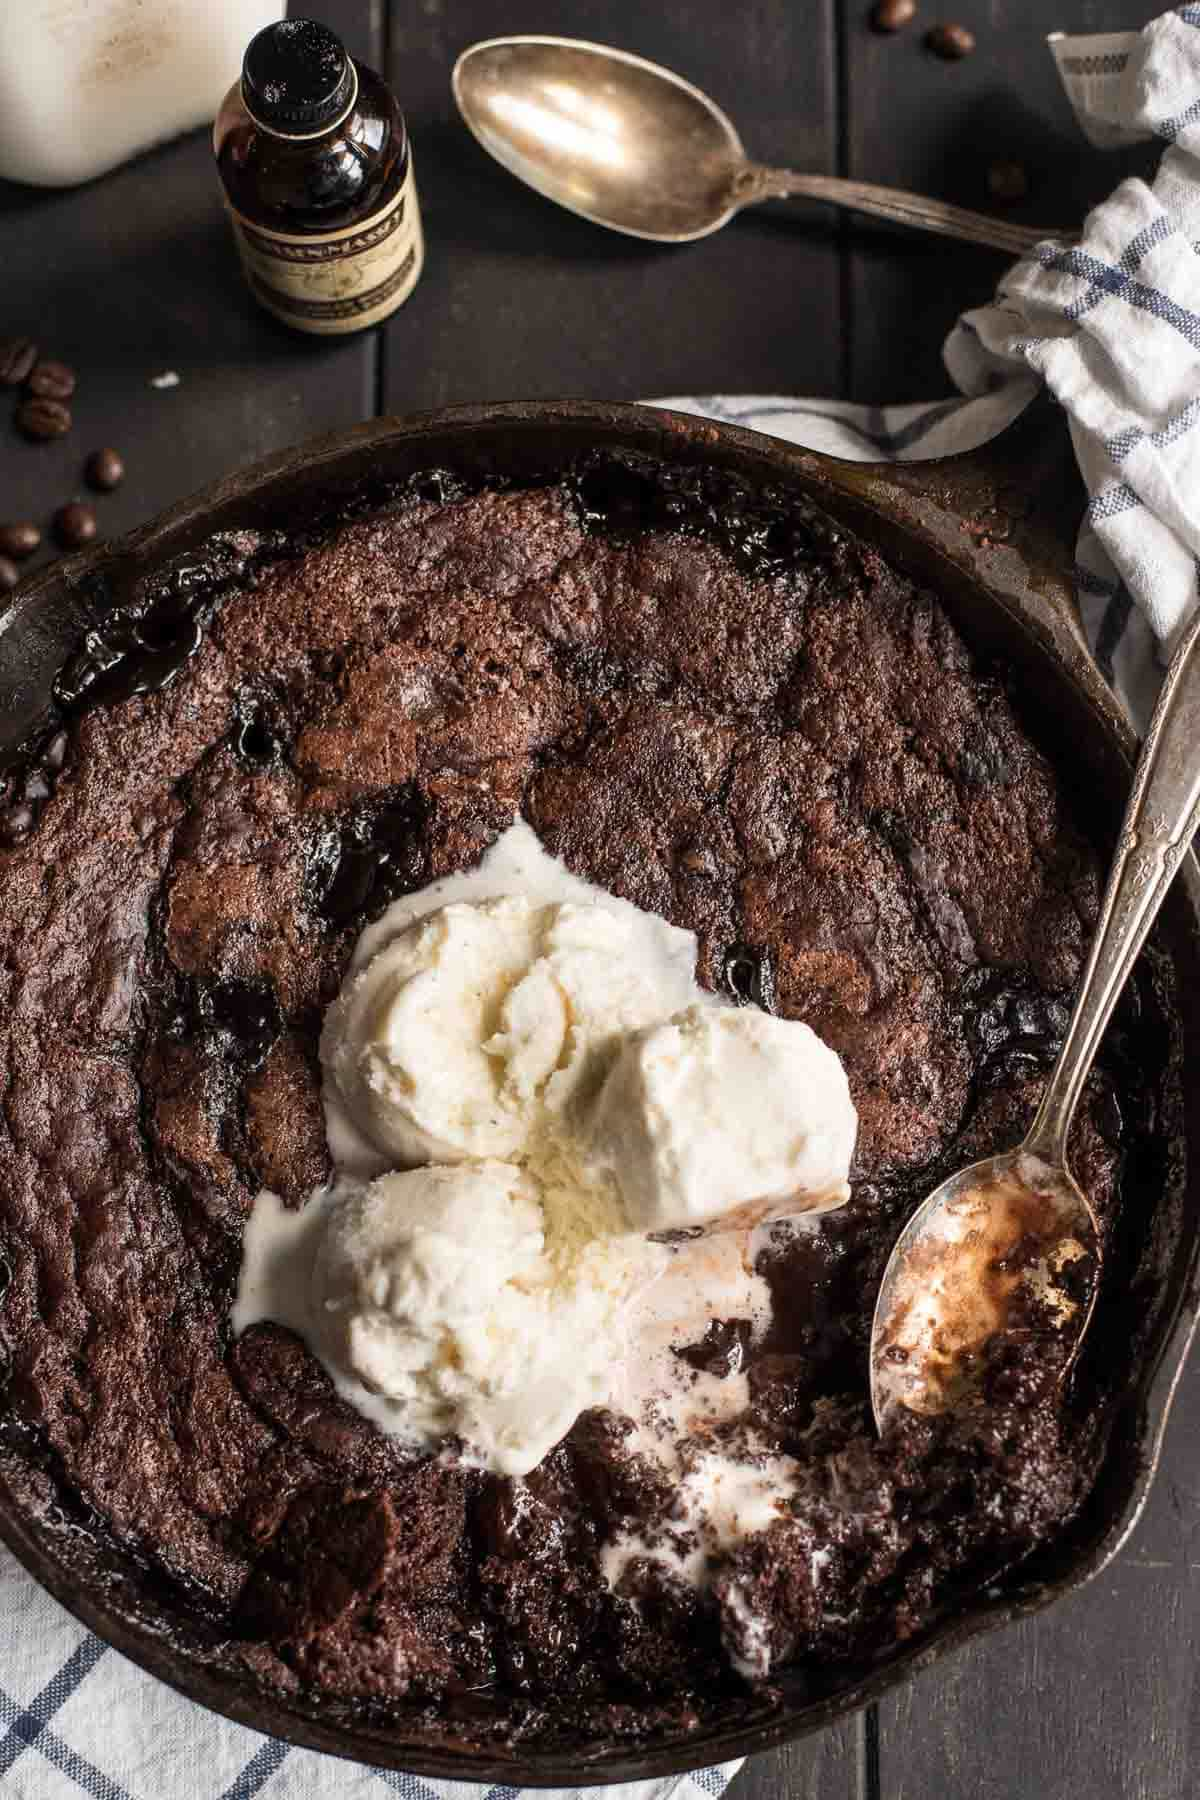 This Mocha Chocolate Cobbler is a rich and indulgent recipe for Valentine's Day or any special occasion.